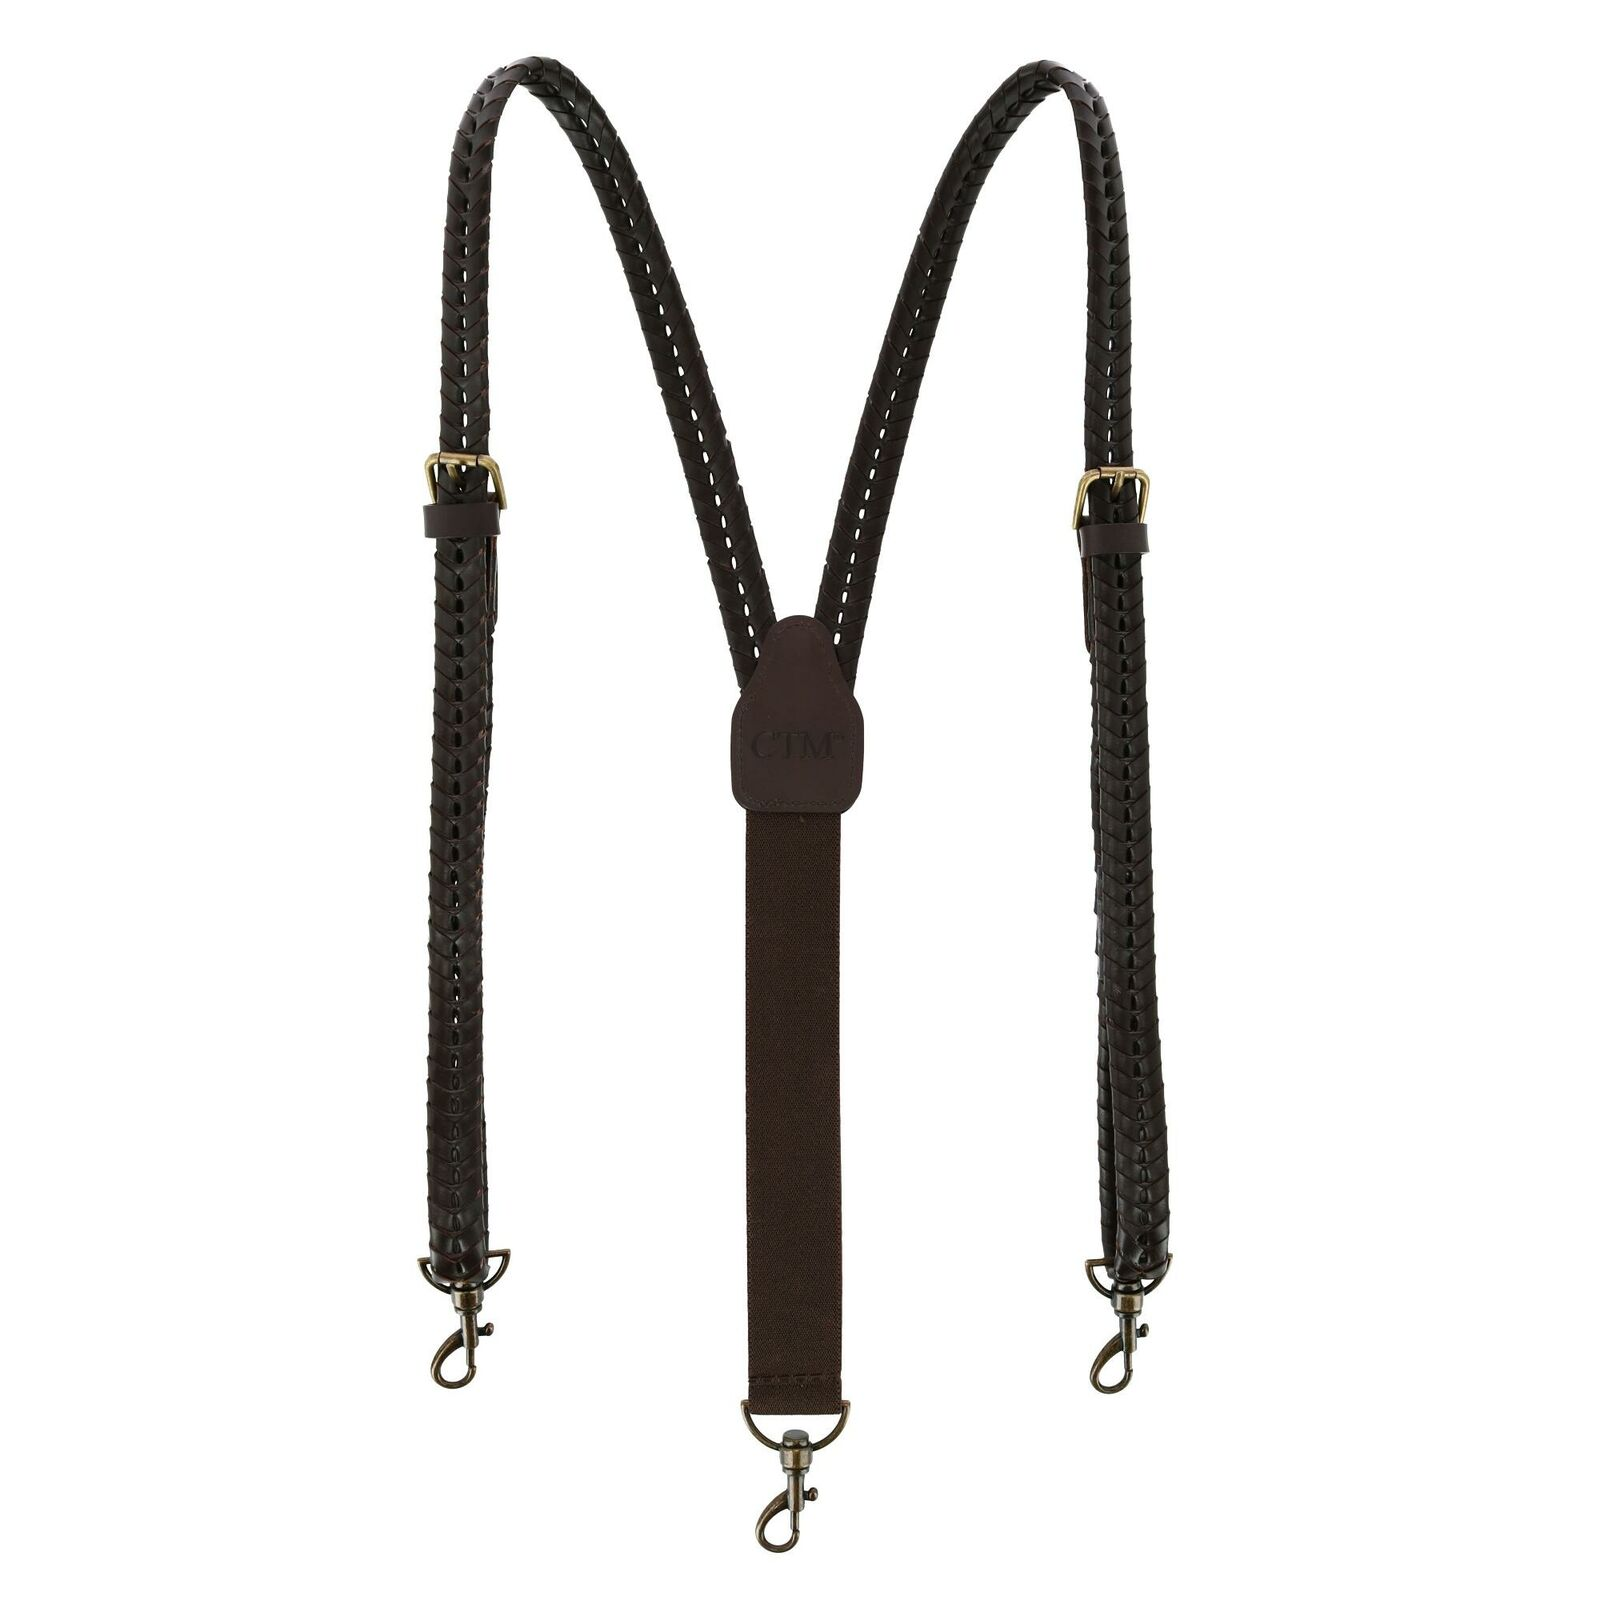 New CTM Men's Coated Leather Flat Braided Suspenders with Metal Swivel Hook Ends